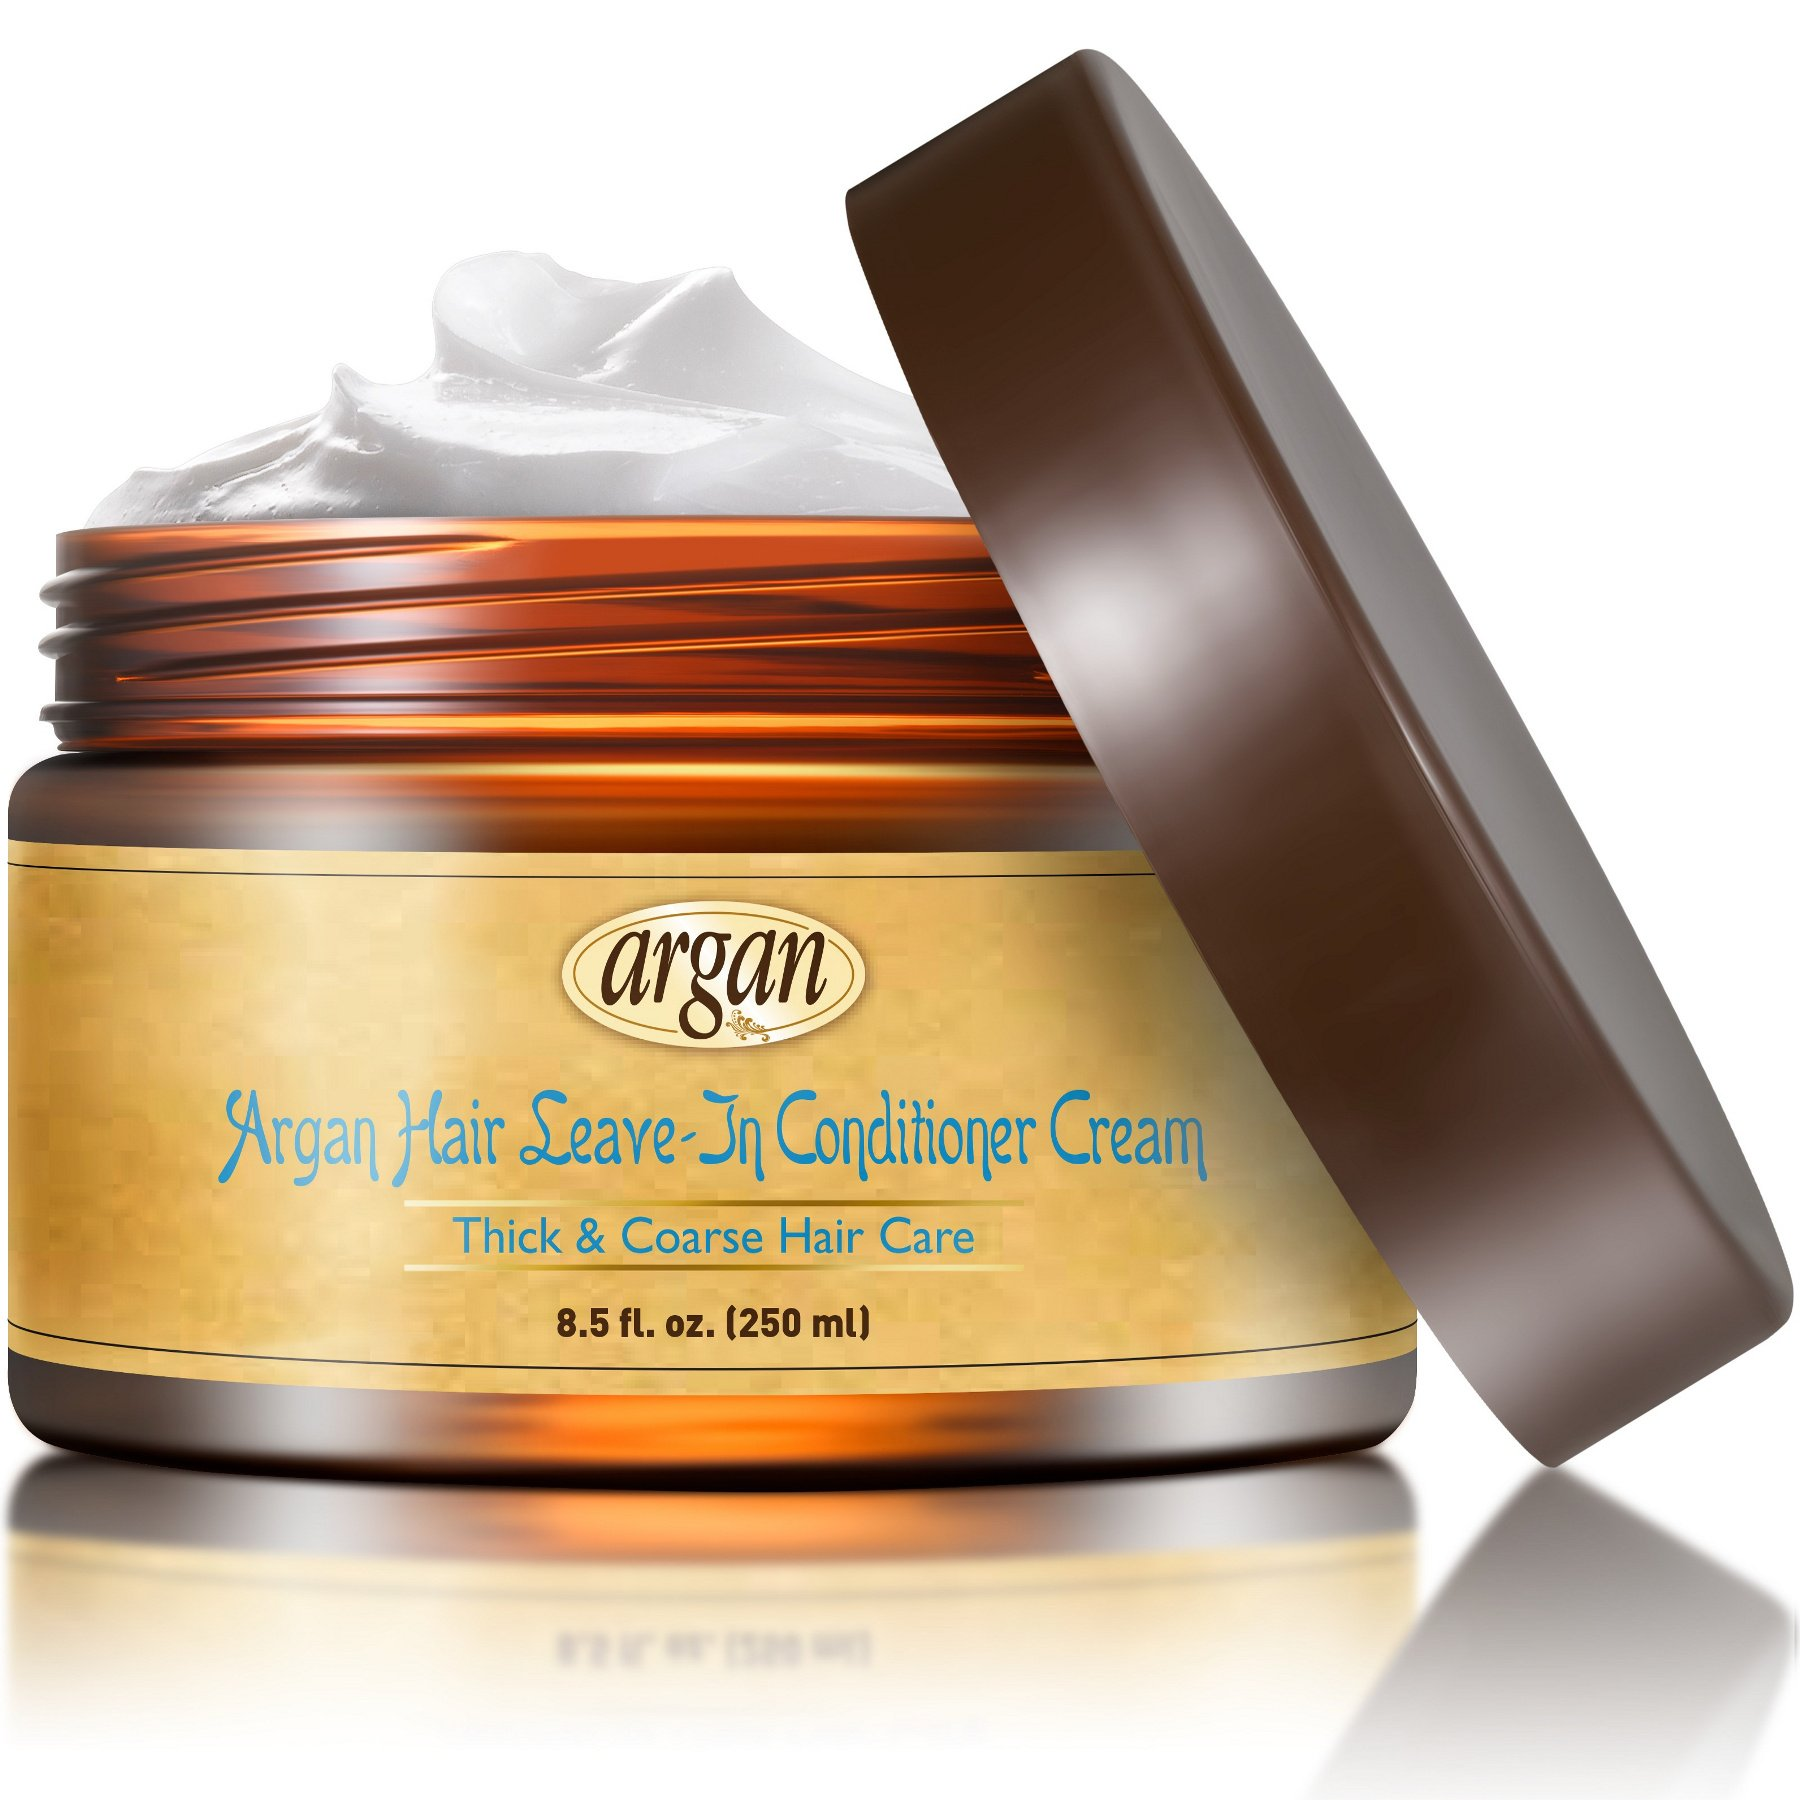 Vitamins Leave In Conditioner Cream - Coarse Thick Ethnic Hair Anti Frizz Styling Product with Nourishing Moroccan Argan Oil